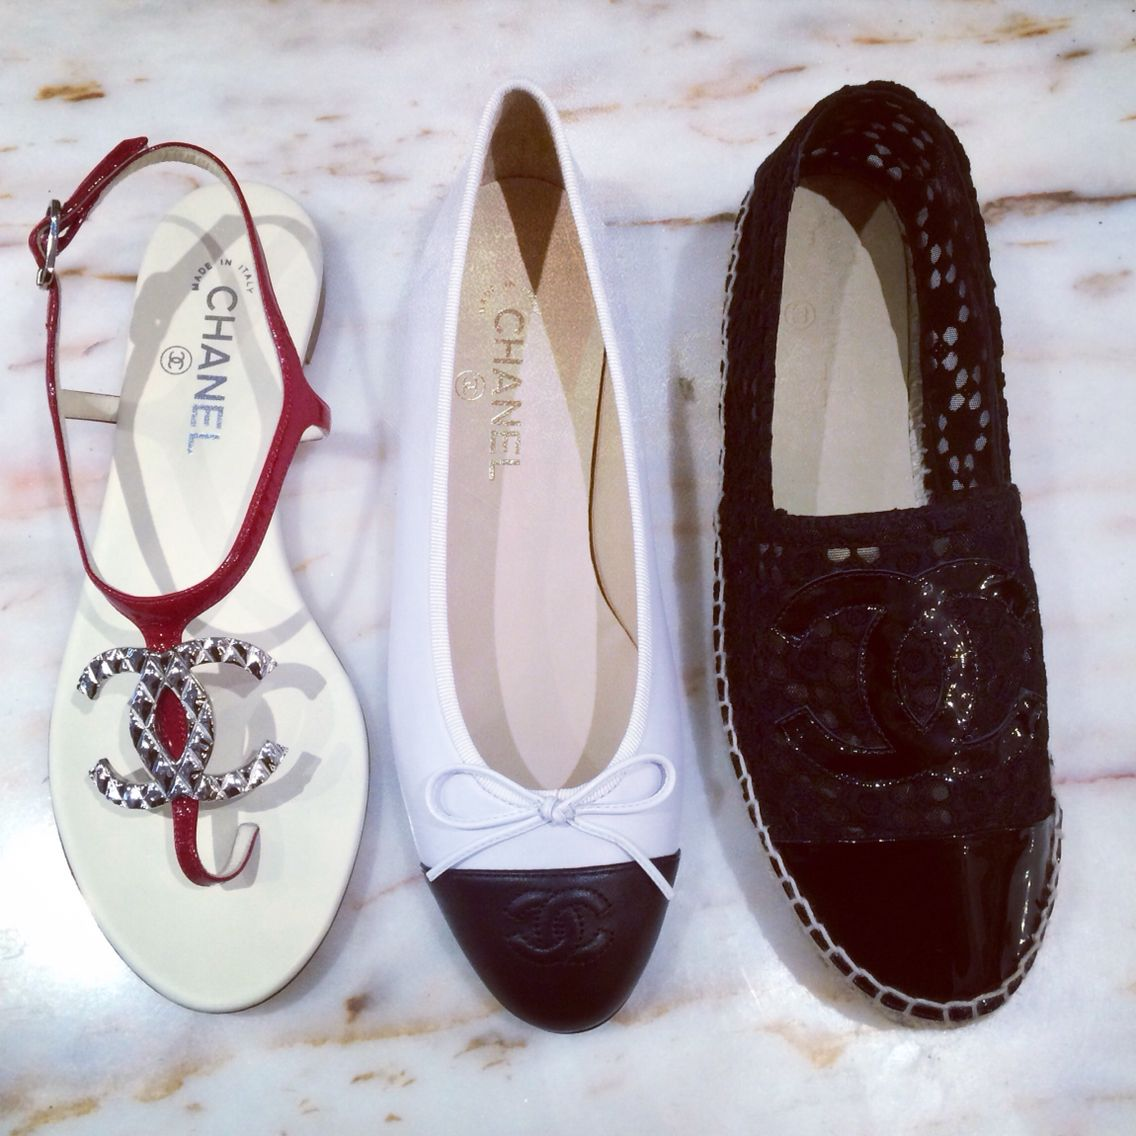 Best View In The House And More New Arrivals To Come Chanelofficial Ascnewarrivals Chanelballetflats Chanele Shoe Sale Chanel Sandals Chanel Espadrilles